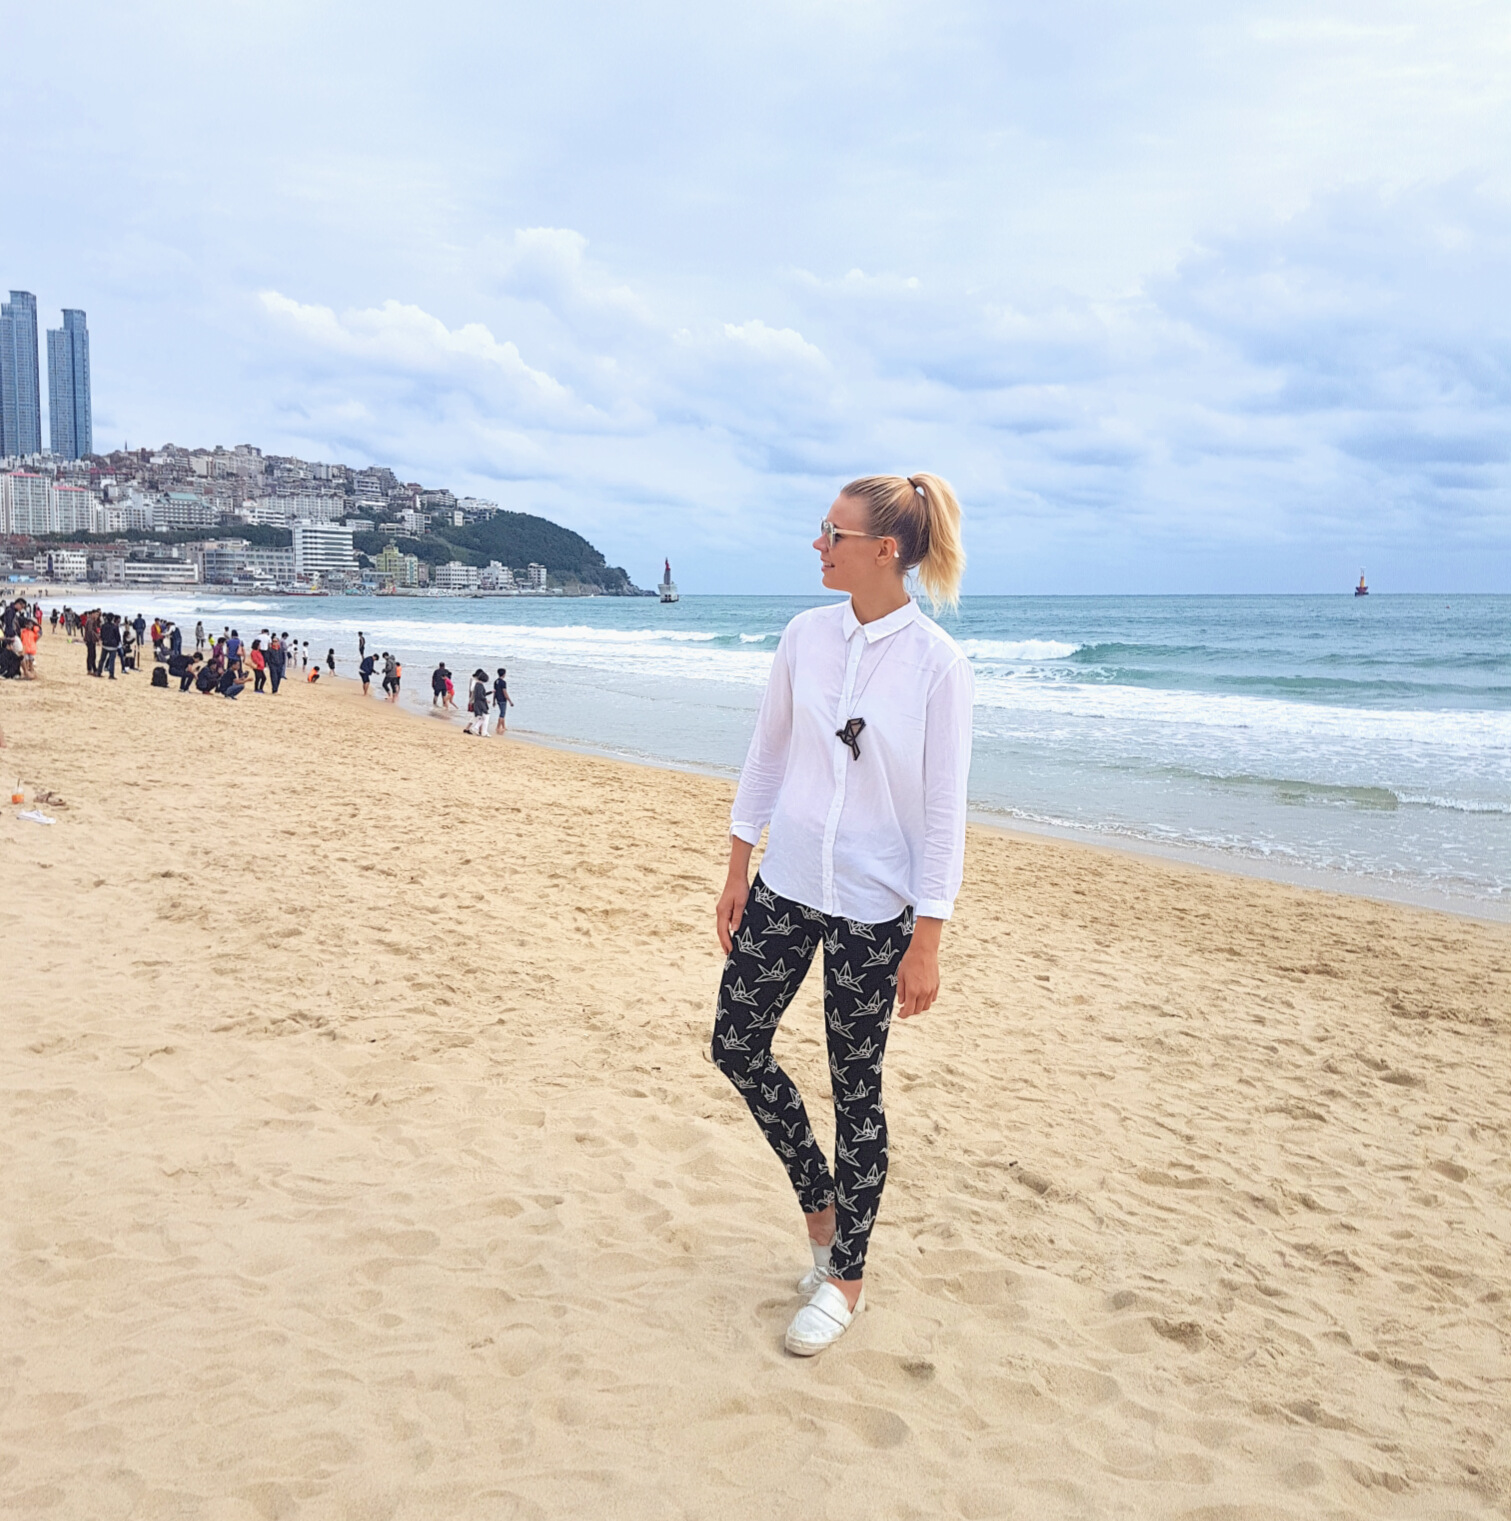 How I have missed the sea breeze. Enjoying the beach life in  Yo Zen  outfit. Photo by Tony Park.